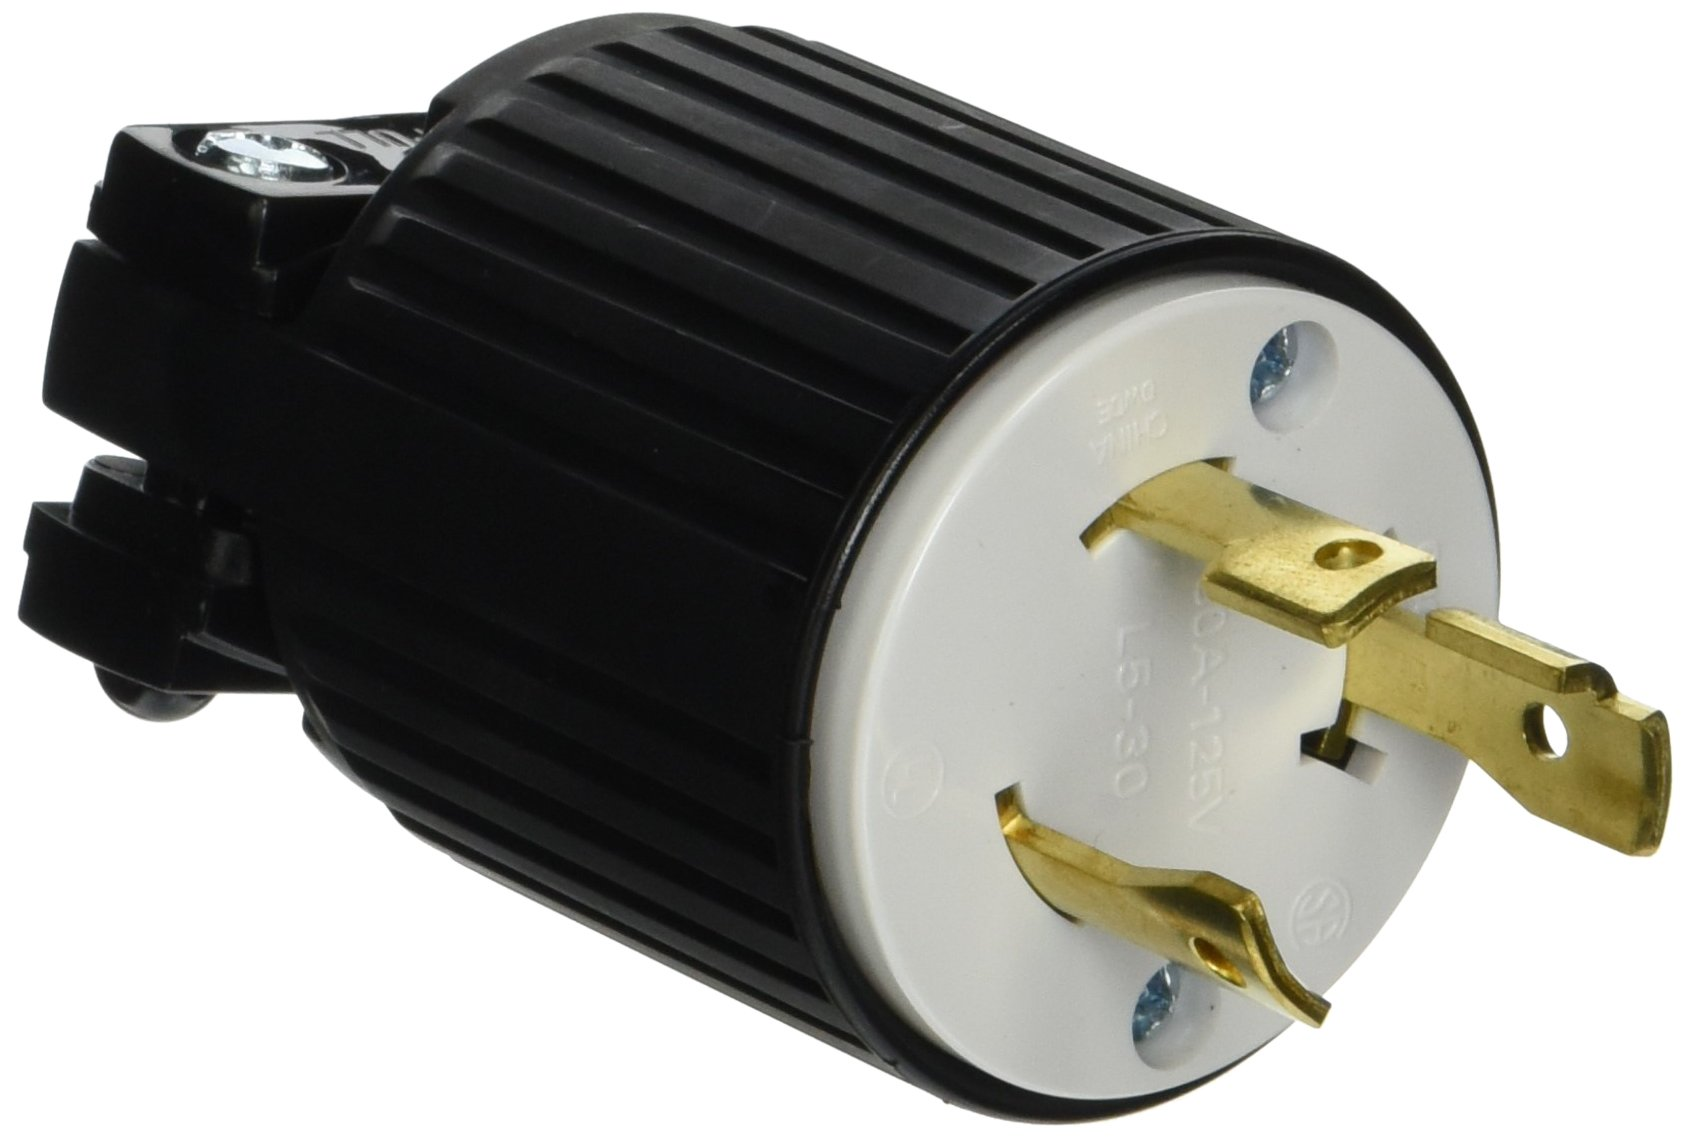 Eaton L530P 30-Amp 125-Volt Hart-Lock Industrial Grade Plug with Safety Grip Black and White